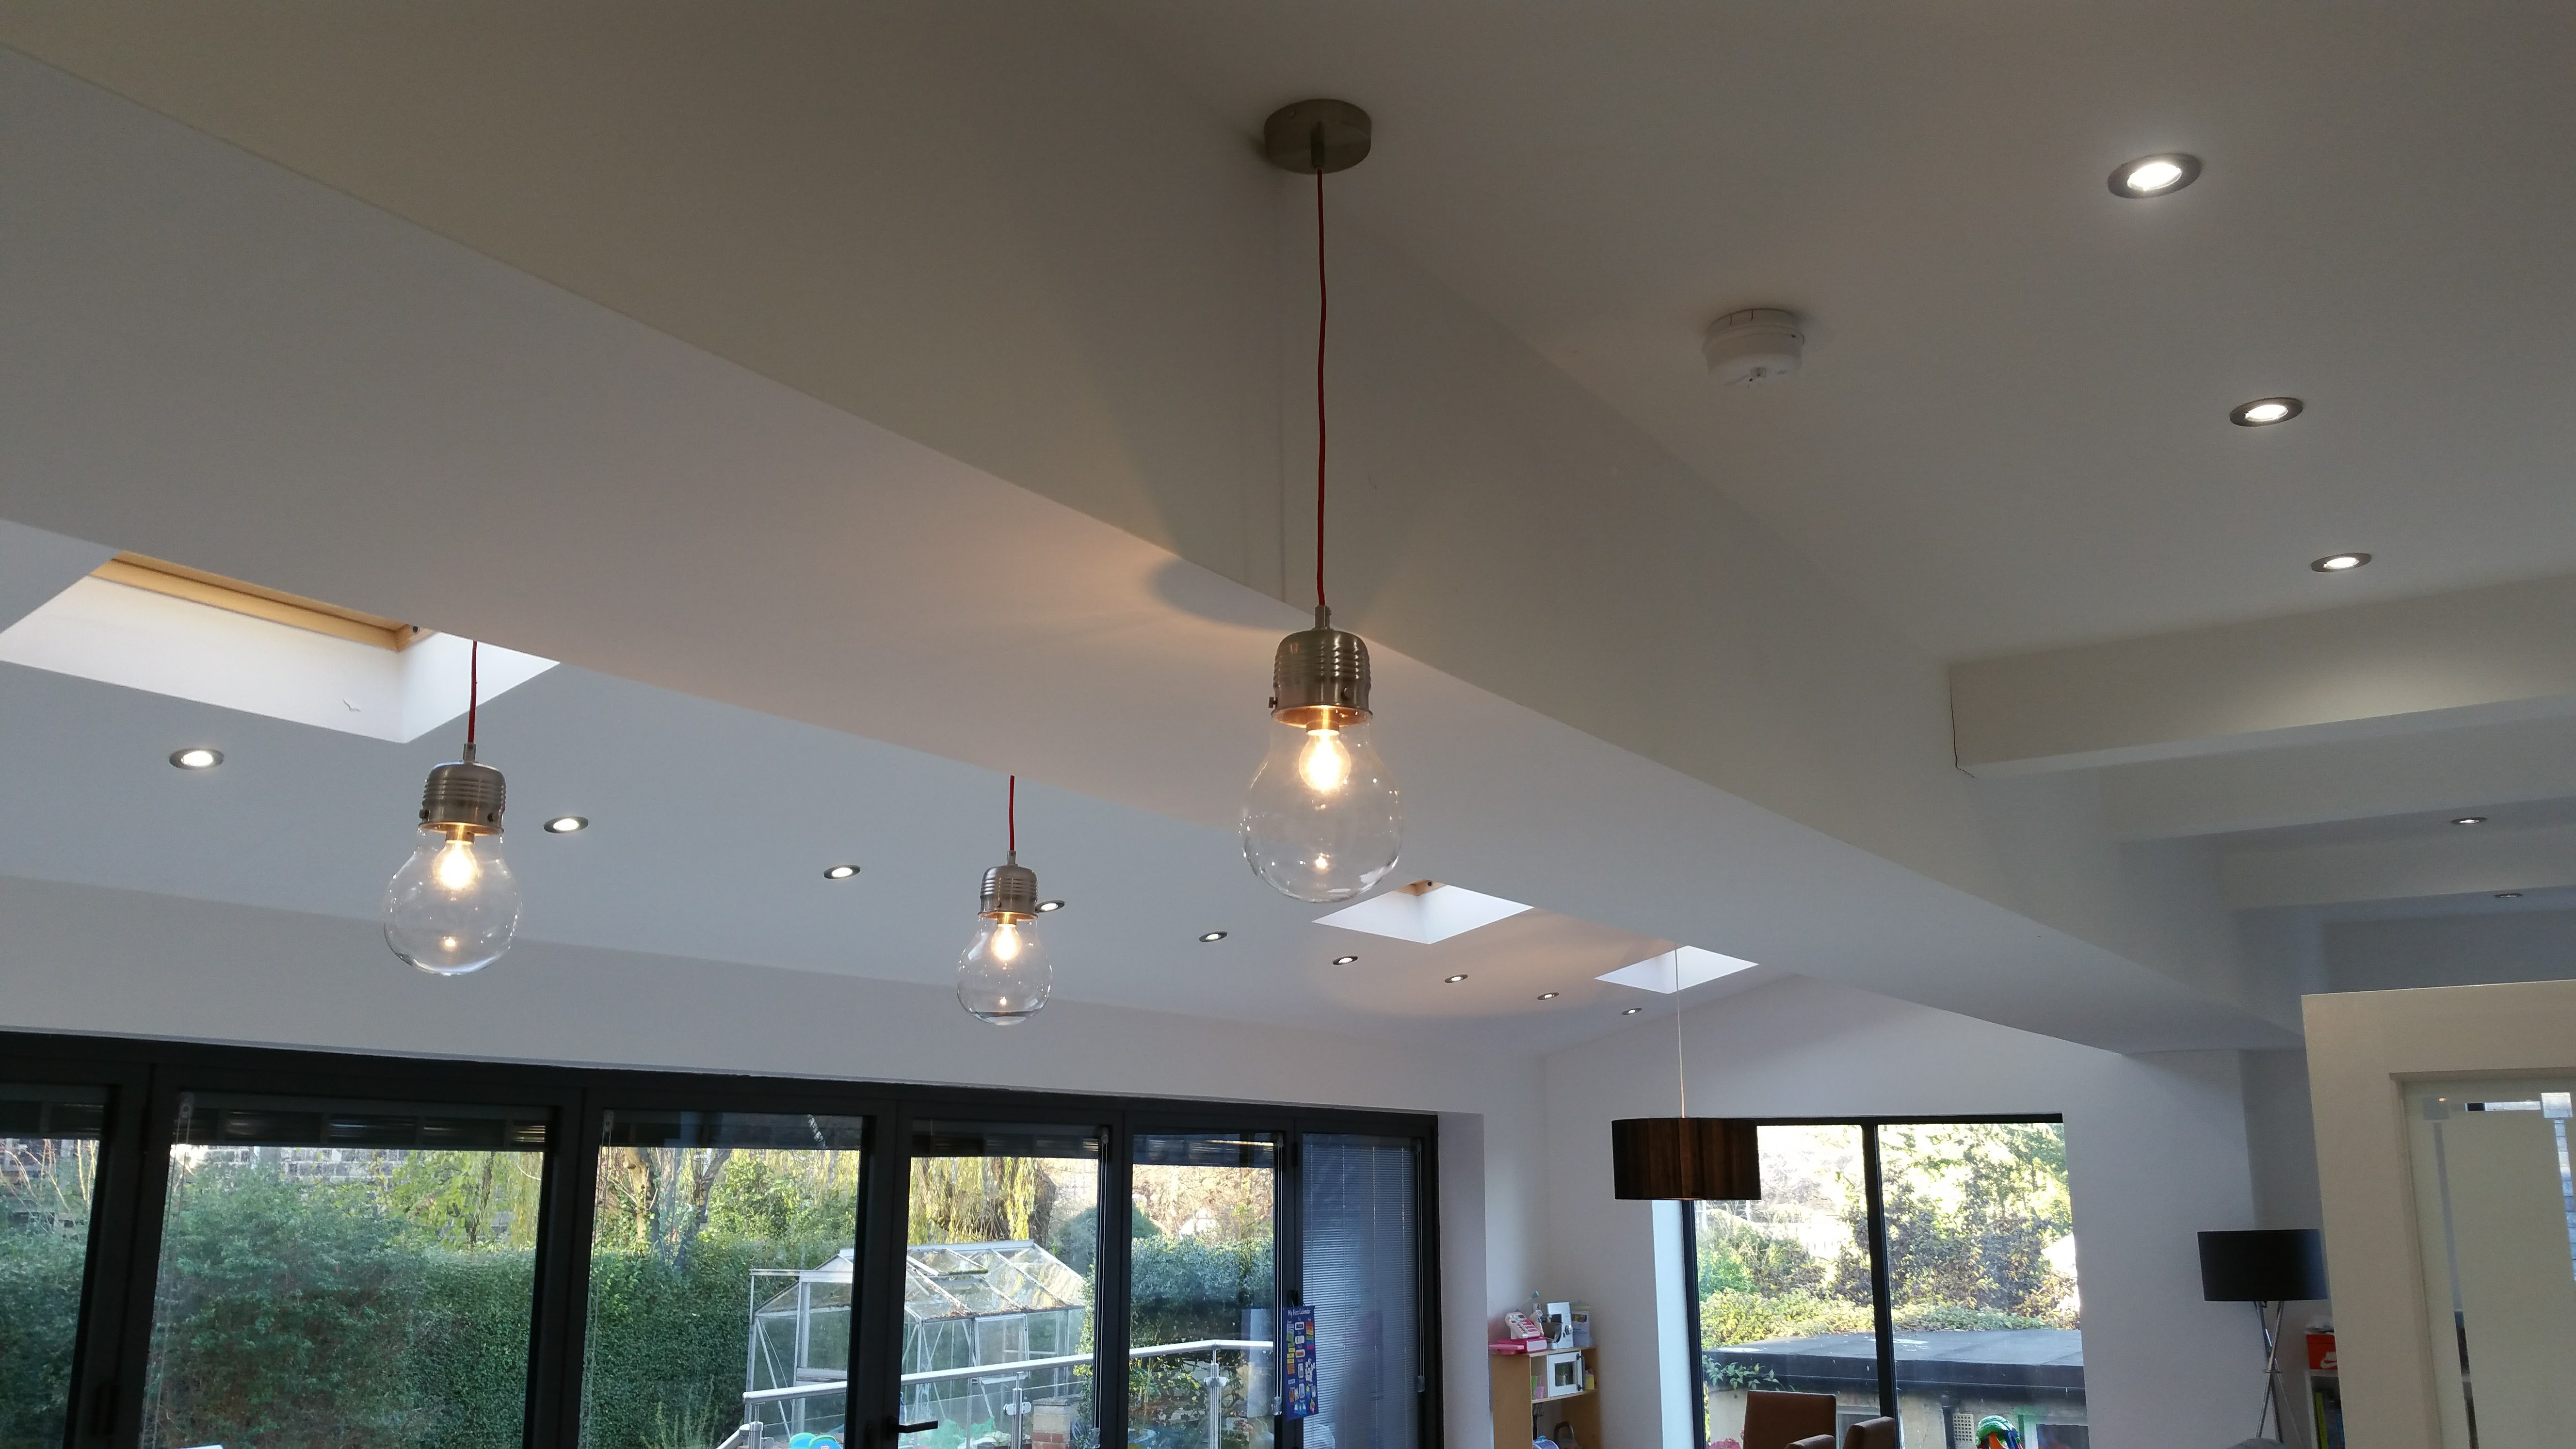 Domestic lighting installed by AJOB Electrical Ltd electrician in Leeds